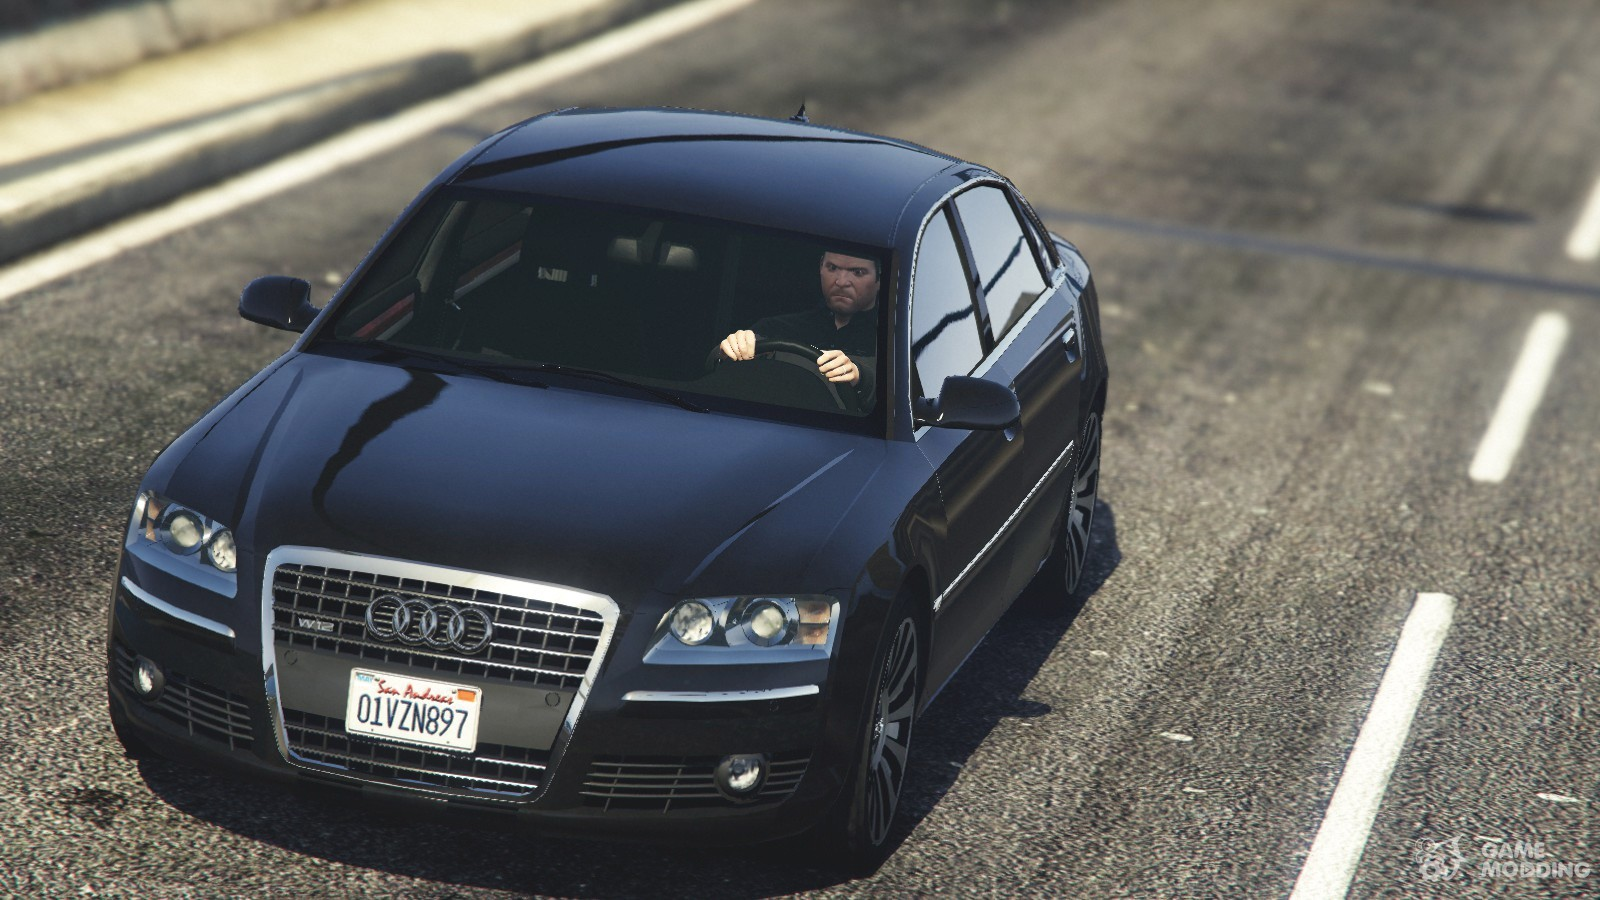 Audi for GTA 5 » Page 2